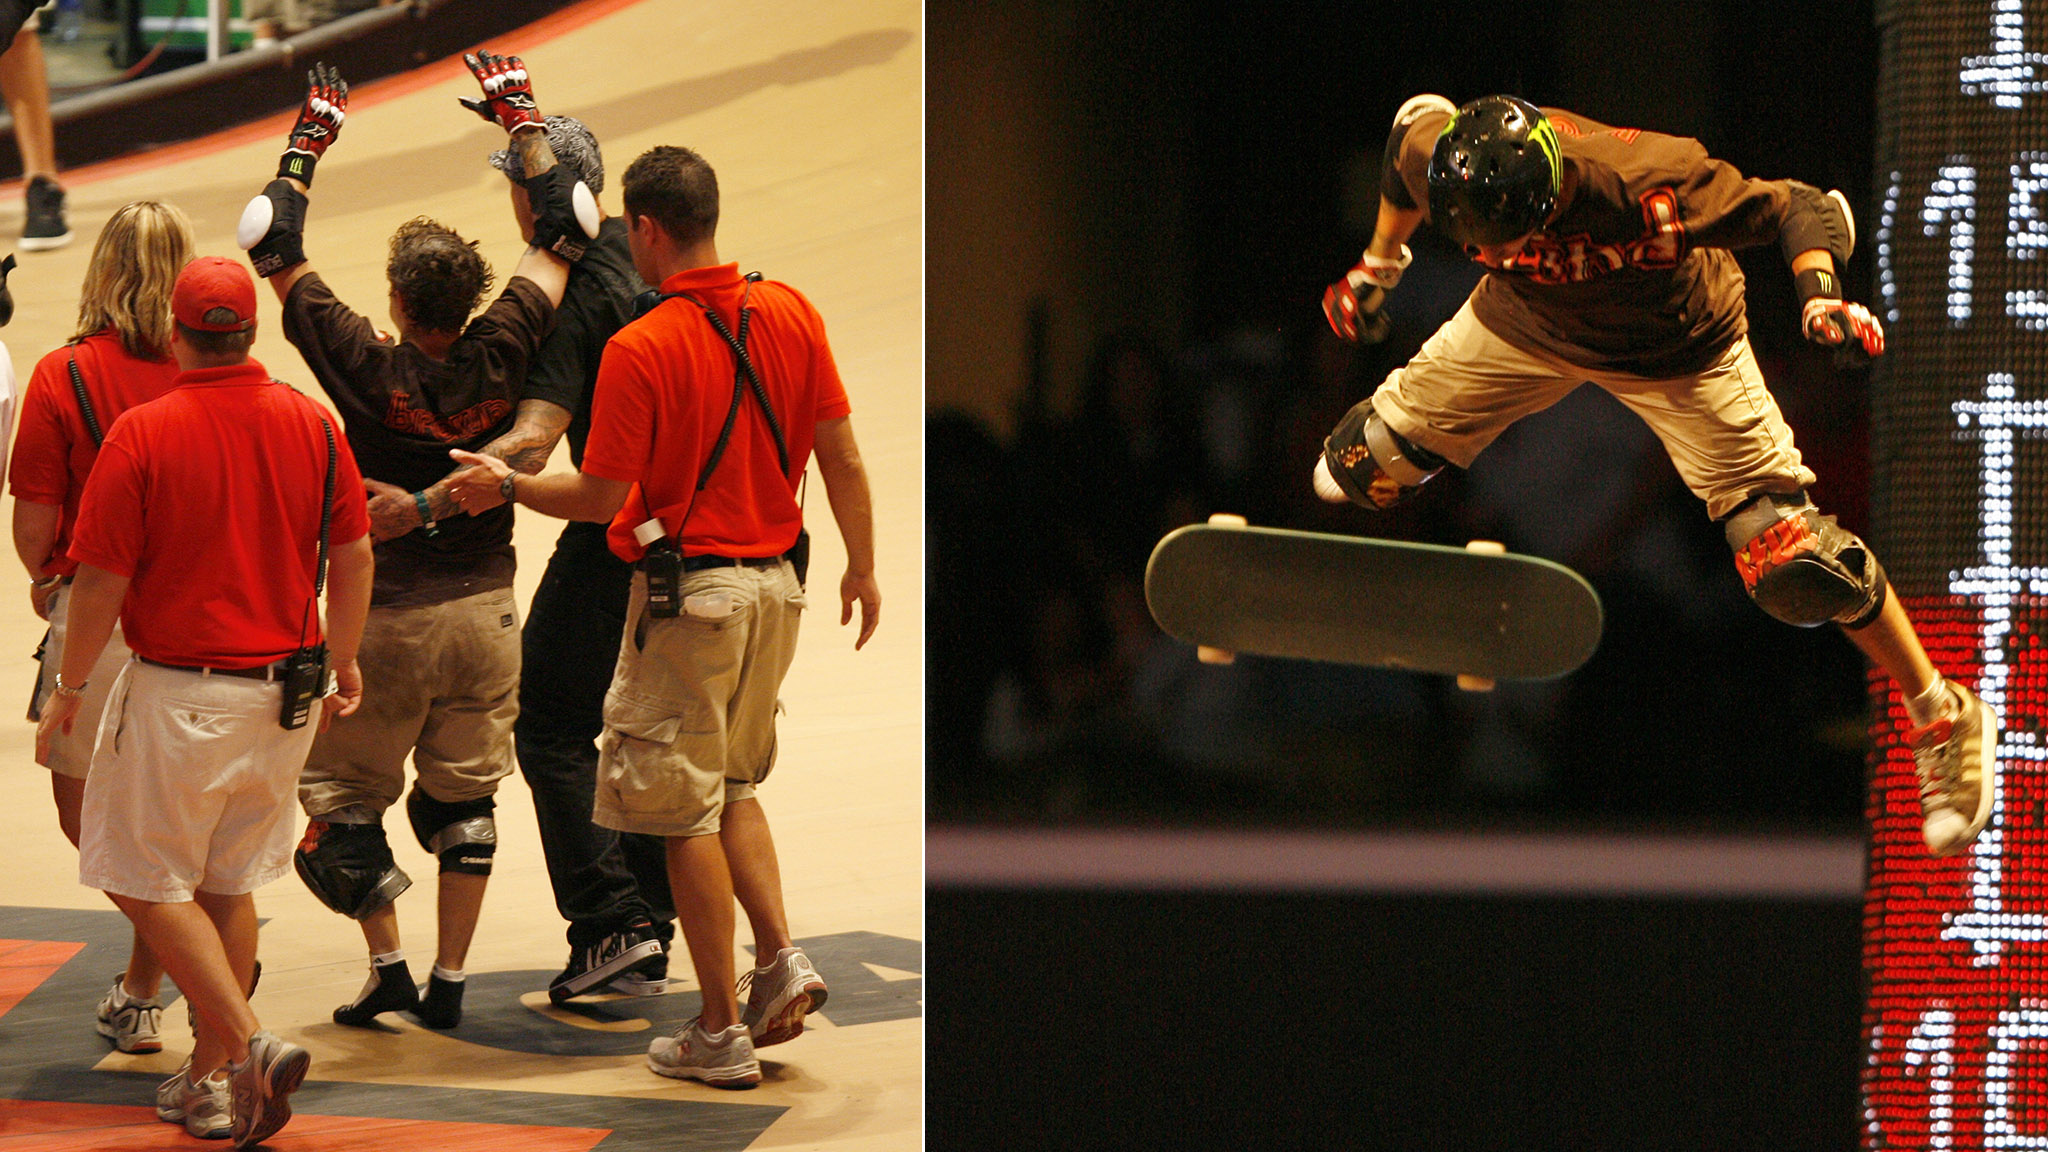 Jake Brown is escorted off the MegaRamp by X Games Medical (left) after free-falling from a MegaRamp air (right) at X Games in 2007.